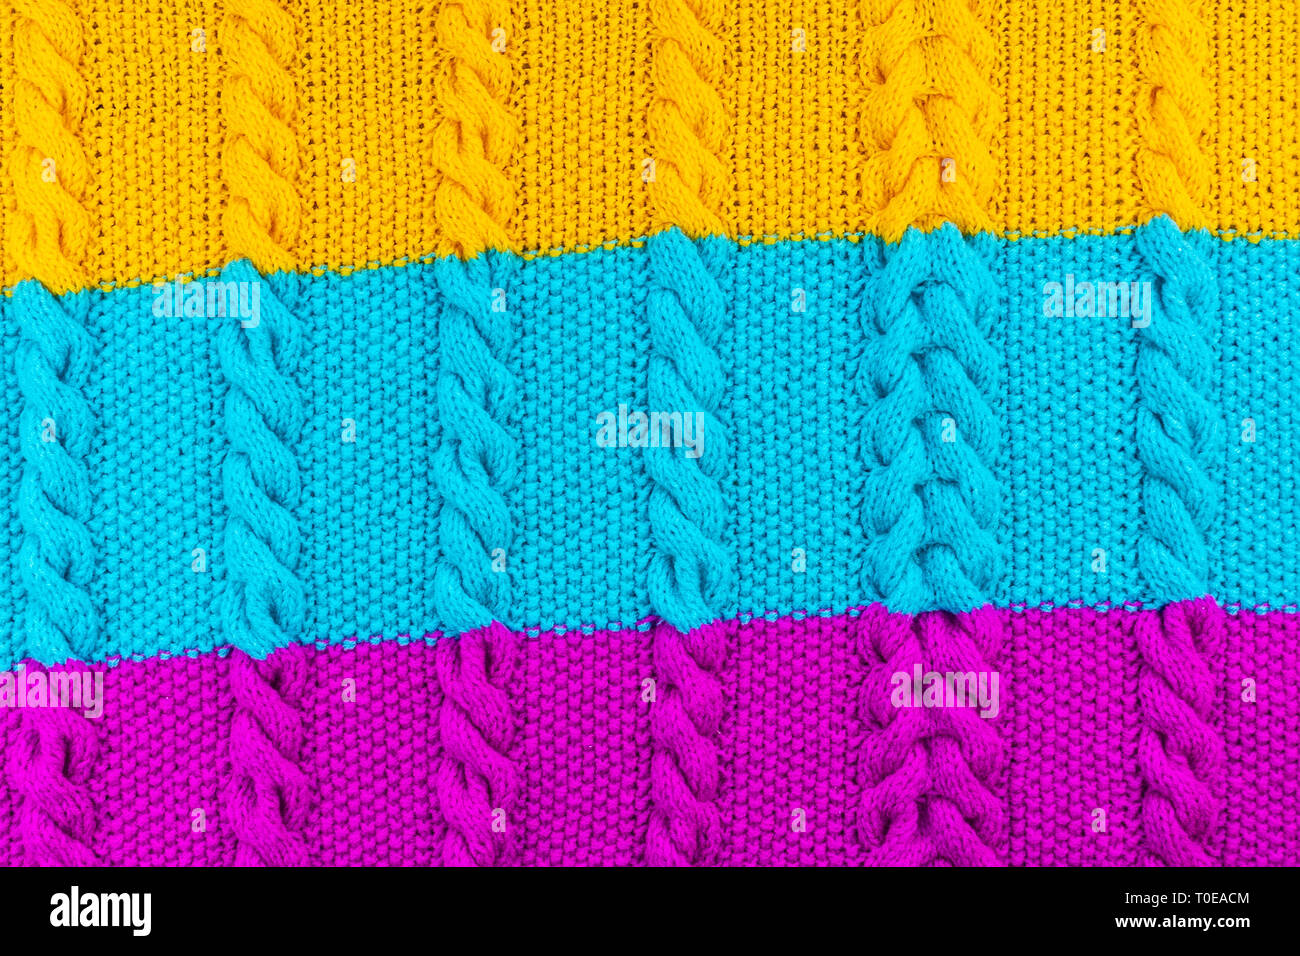 Texture Of Knitted Woolen Fabric For Wallpaper And An Abstract Background Stock Photo 241260676 Alamy